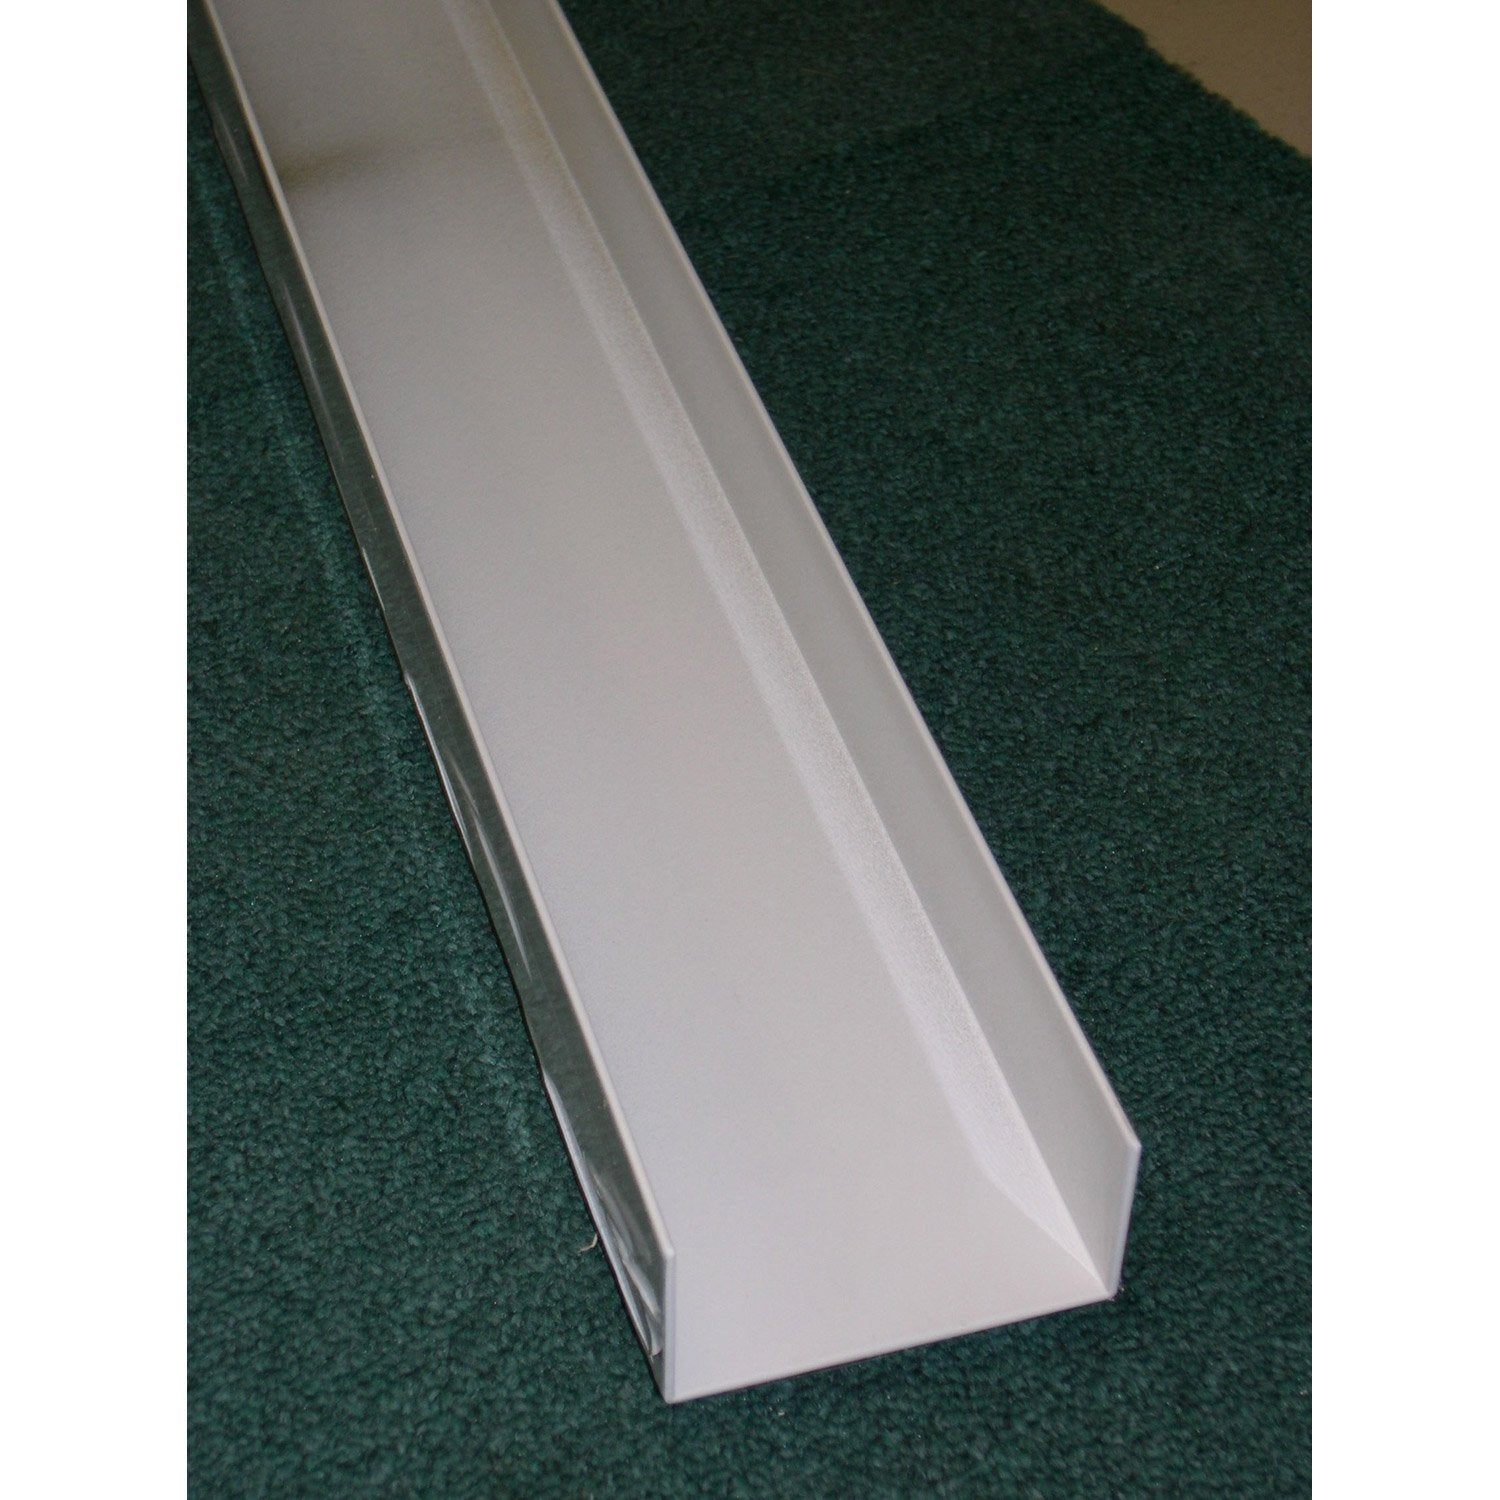 Profile pvc leroy merlin for Serramenti pvc leroy merlin